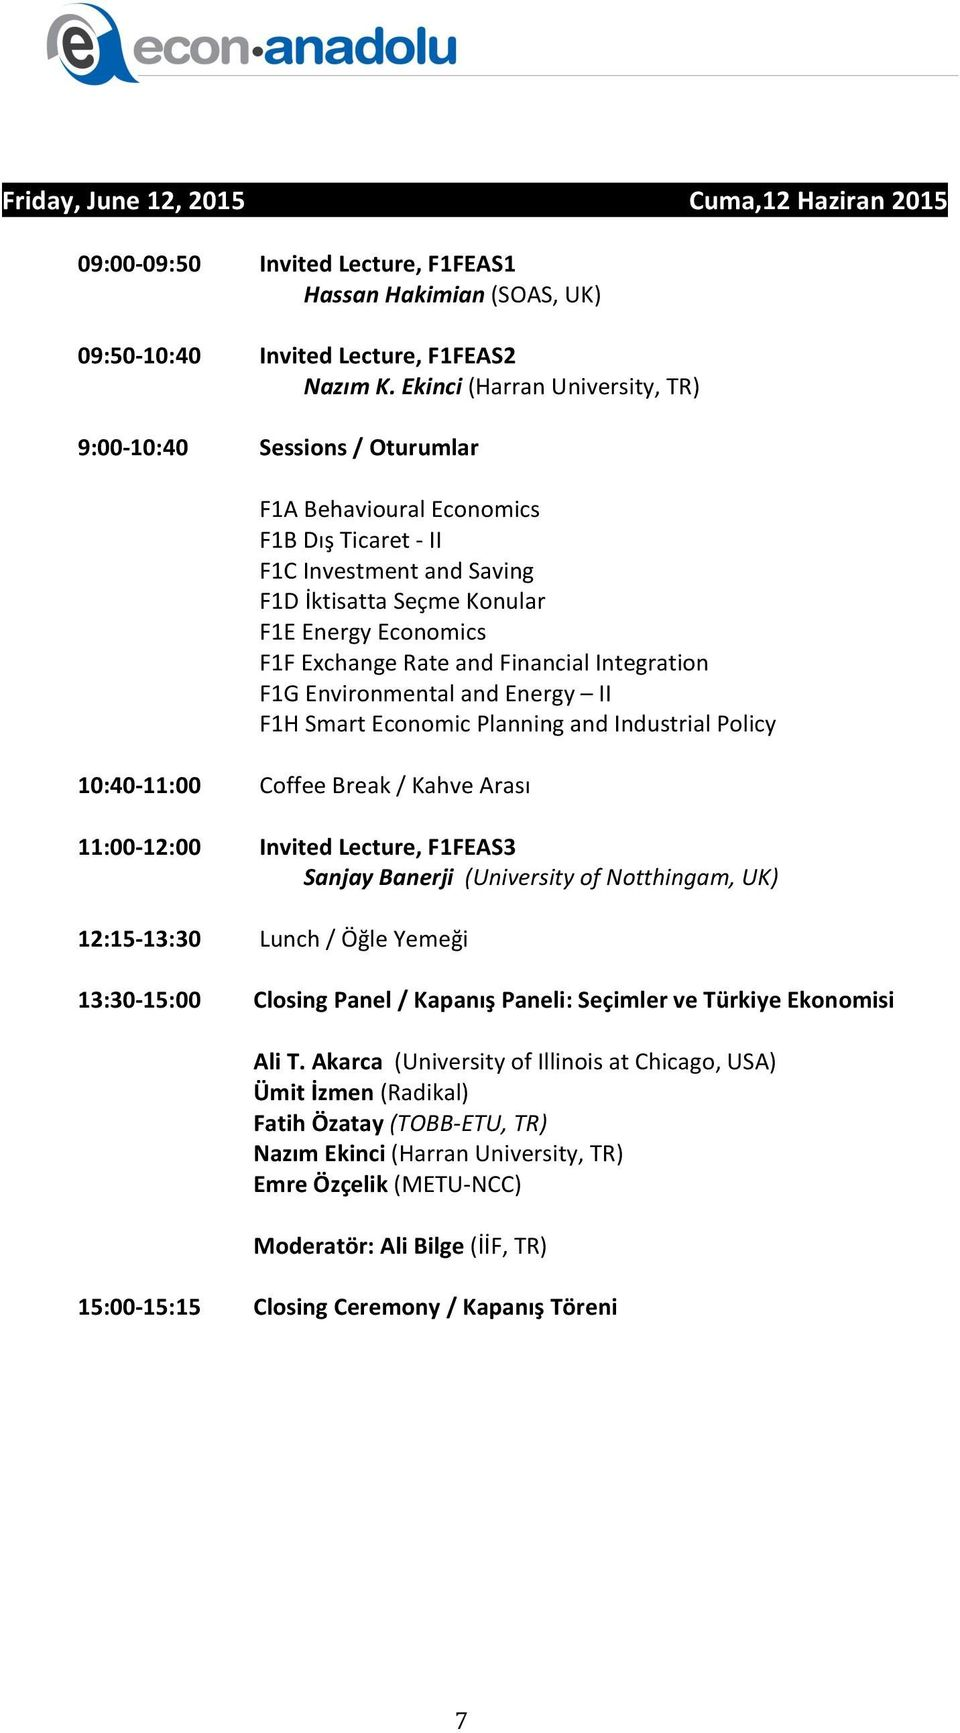 Financial Integration F1G Environmental and Energy II F1H Smart Economic Planning and Industrial Policy 10:40-11:00 11:00-12:00 12:15-13:30 13:30-15:00 Coffee Break / Kahve Arası Invited Lecture,